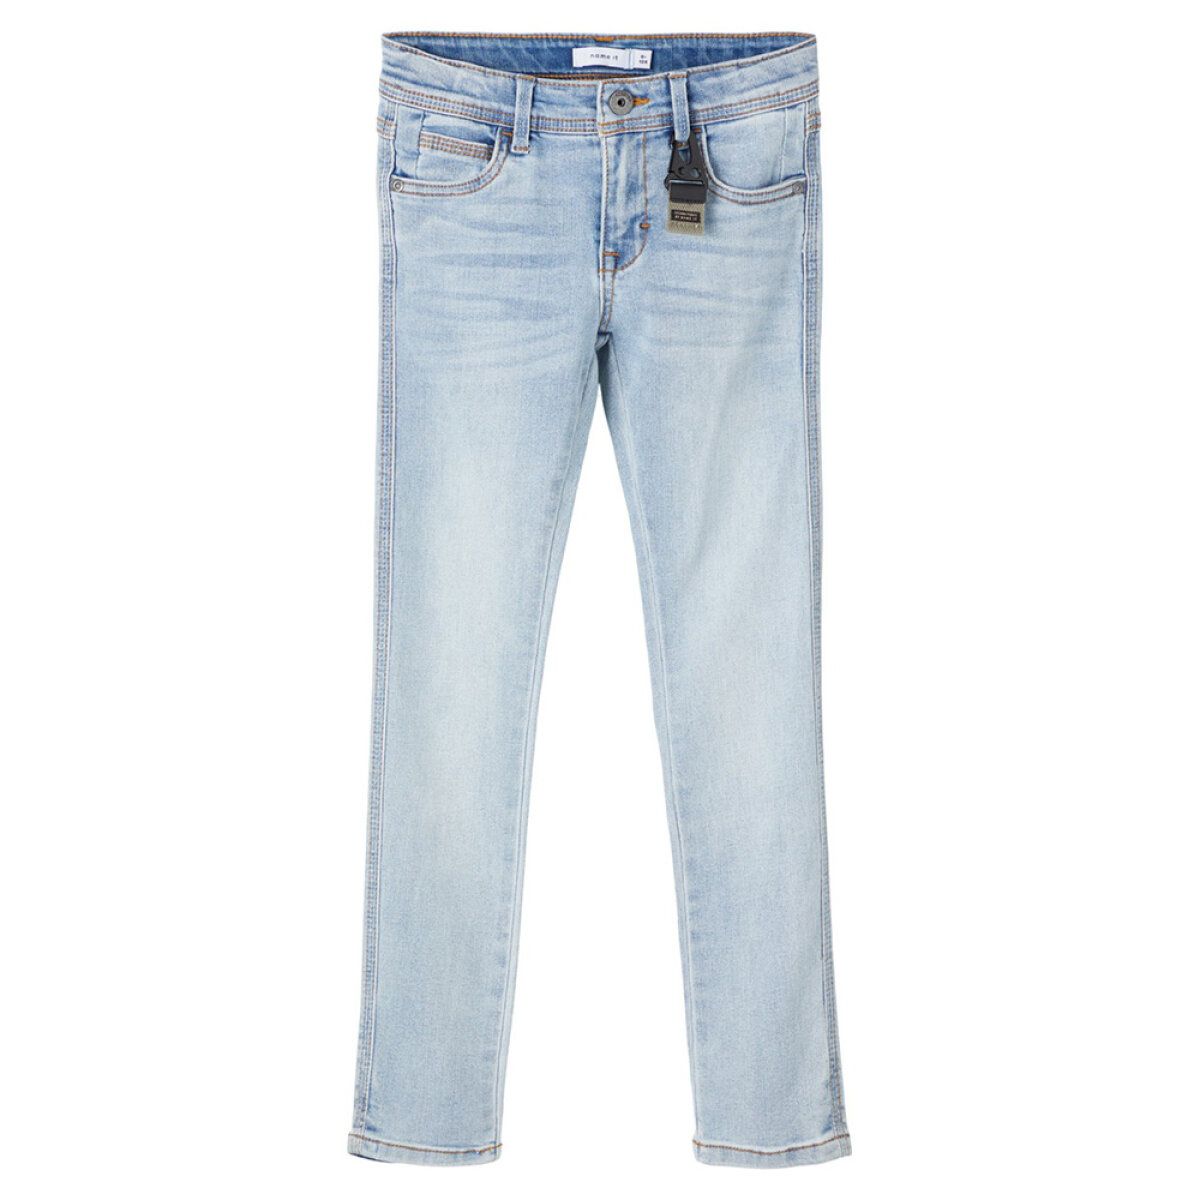 Name It jongens jeans NKMPETE1452 blauw